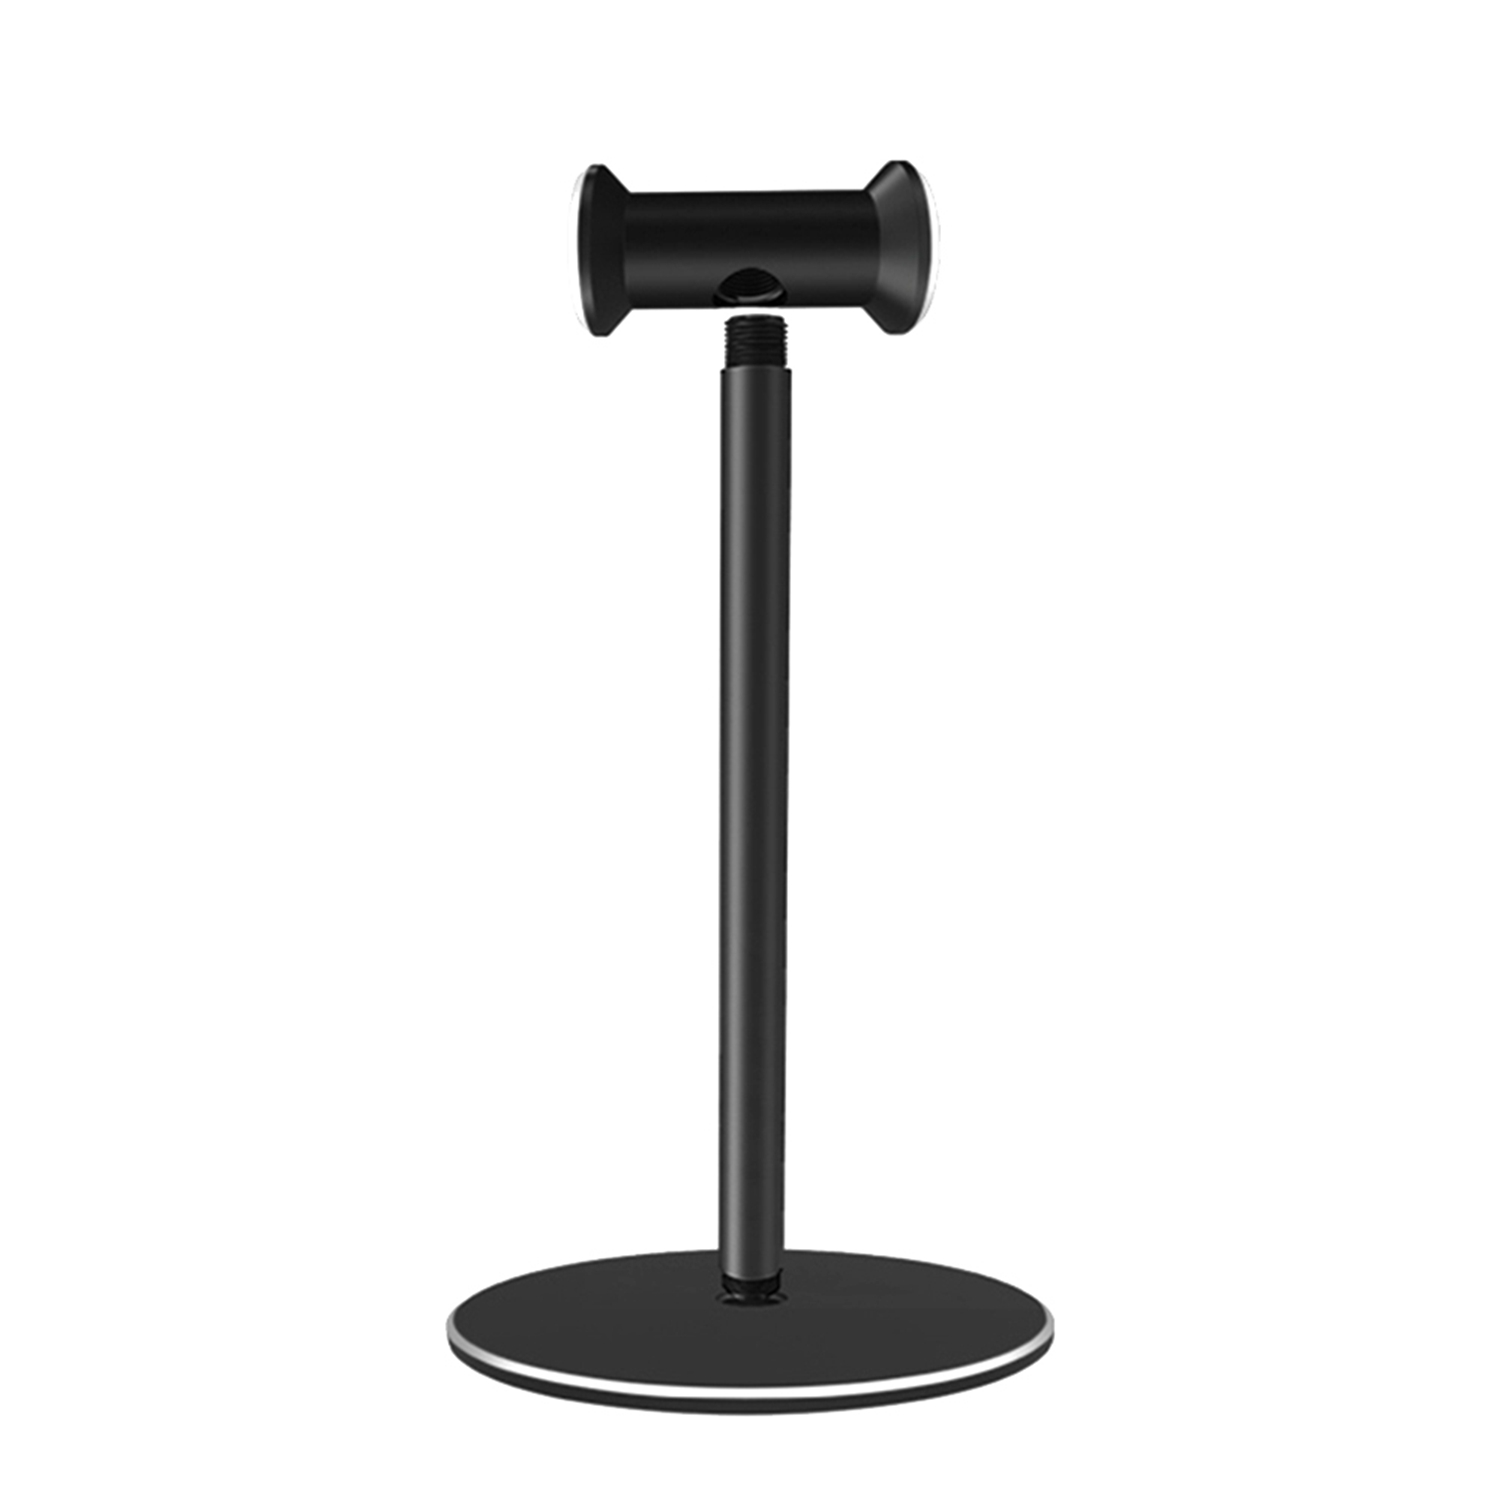 MOCH-Detachable Metal Headphones Holder Aluminum Alloy Stand Stable Desktop Bracket With Silicone Pad For Gaming Headsets